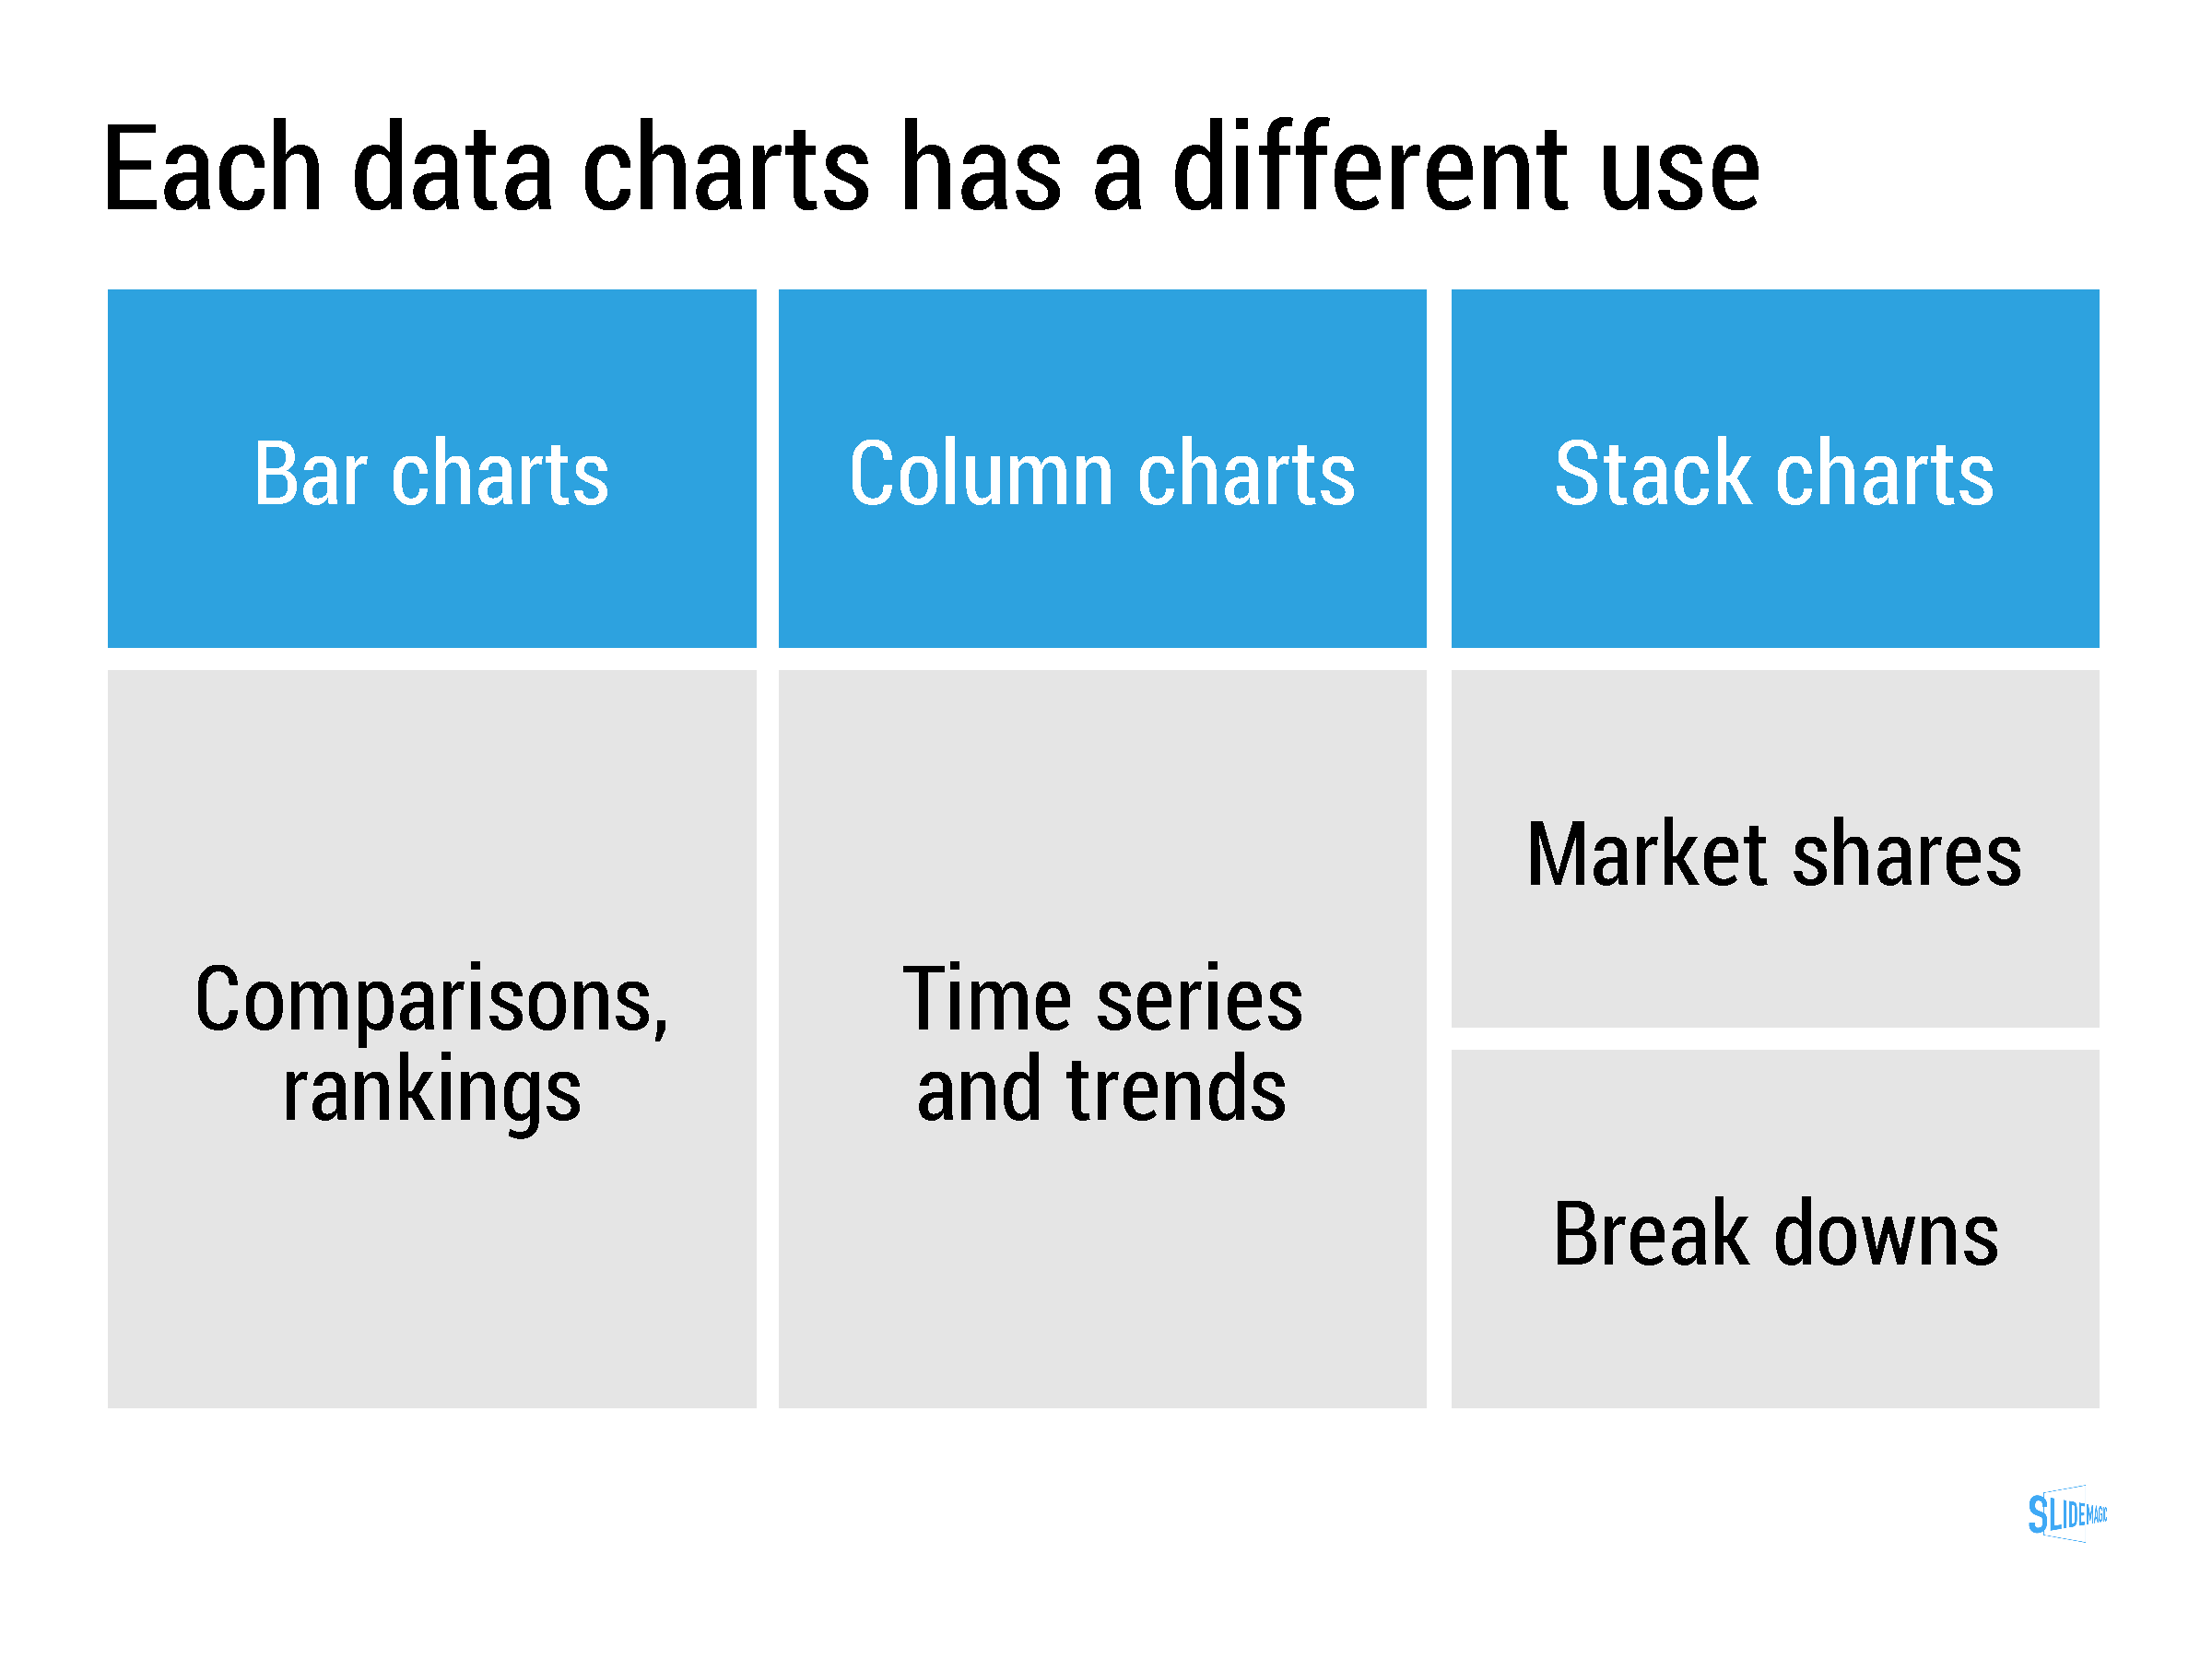 Working-with-data-charts_Page_03.png